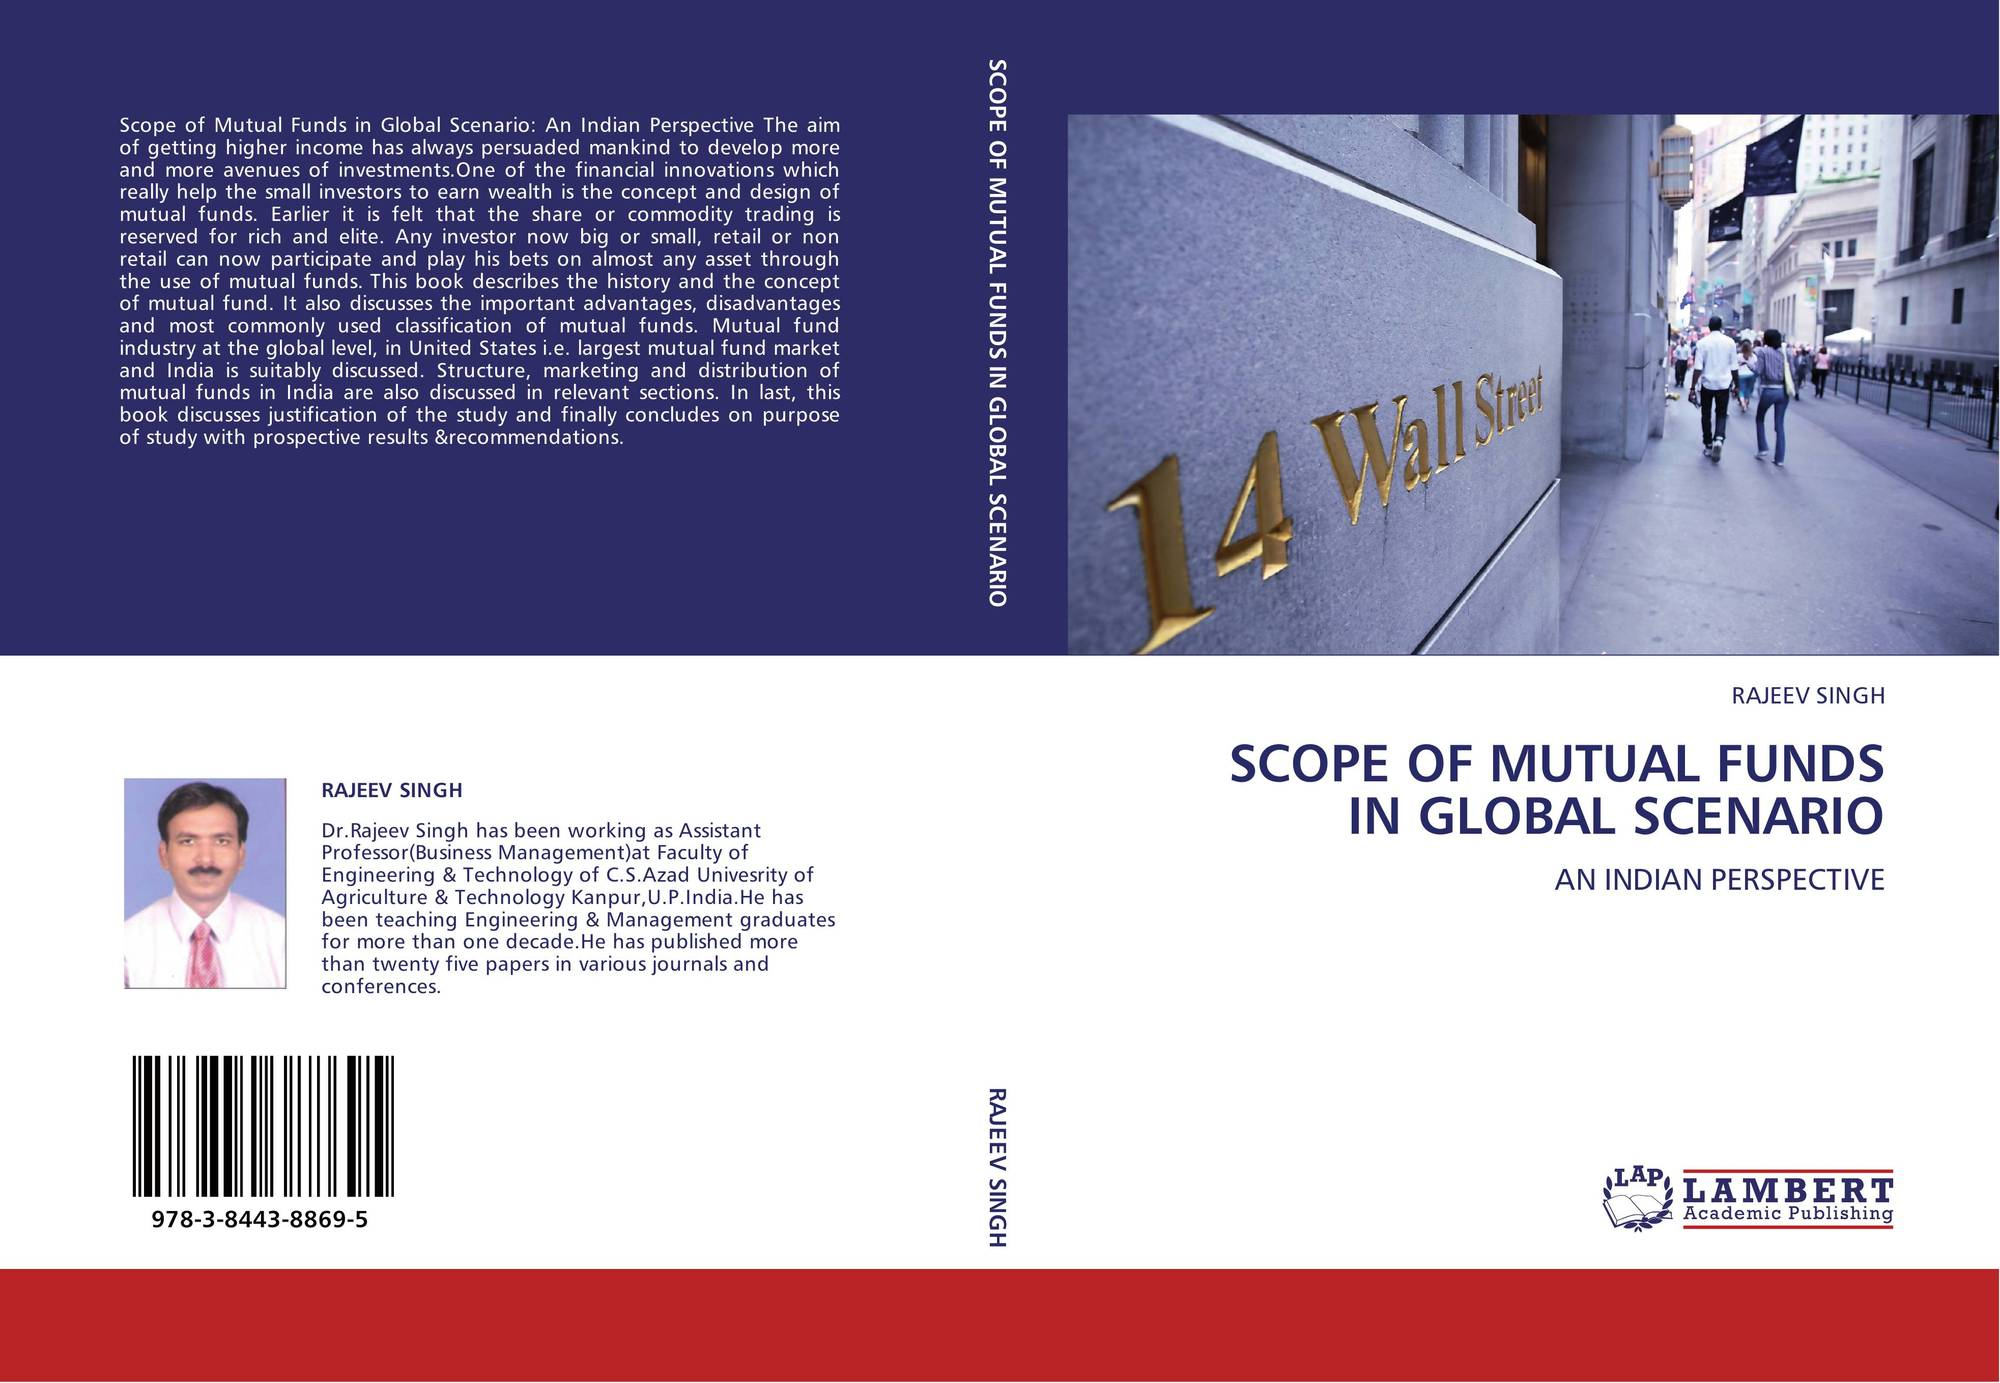 scope of mutual fund in india Many mutual funds have not been passing on the benefits of rapid growth in assets to investors the cost of investing in mutual funds in india is generating much debate between distributors, fund houses and industry participants a 2017 report by morningstar found india amongst the most expensive.